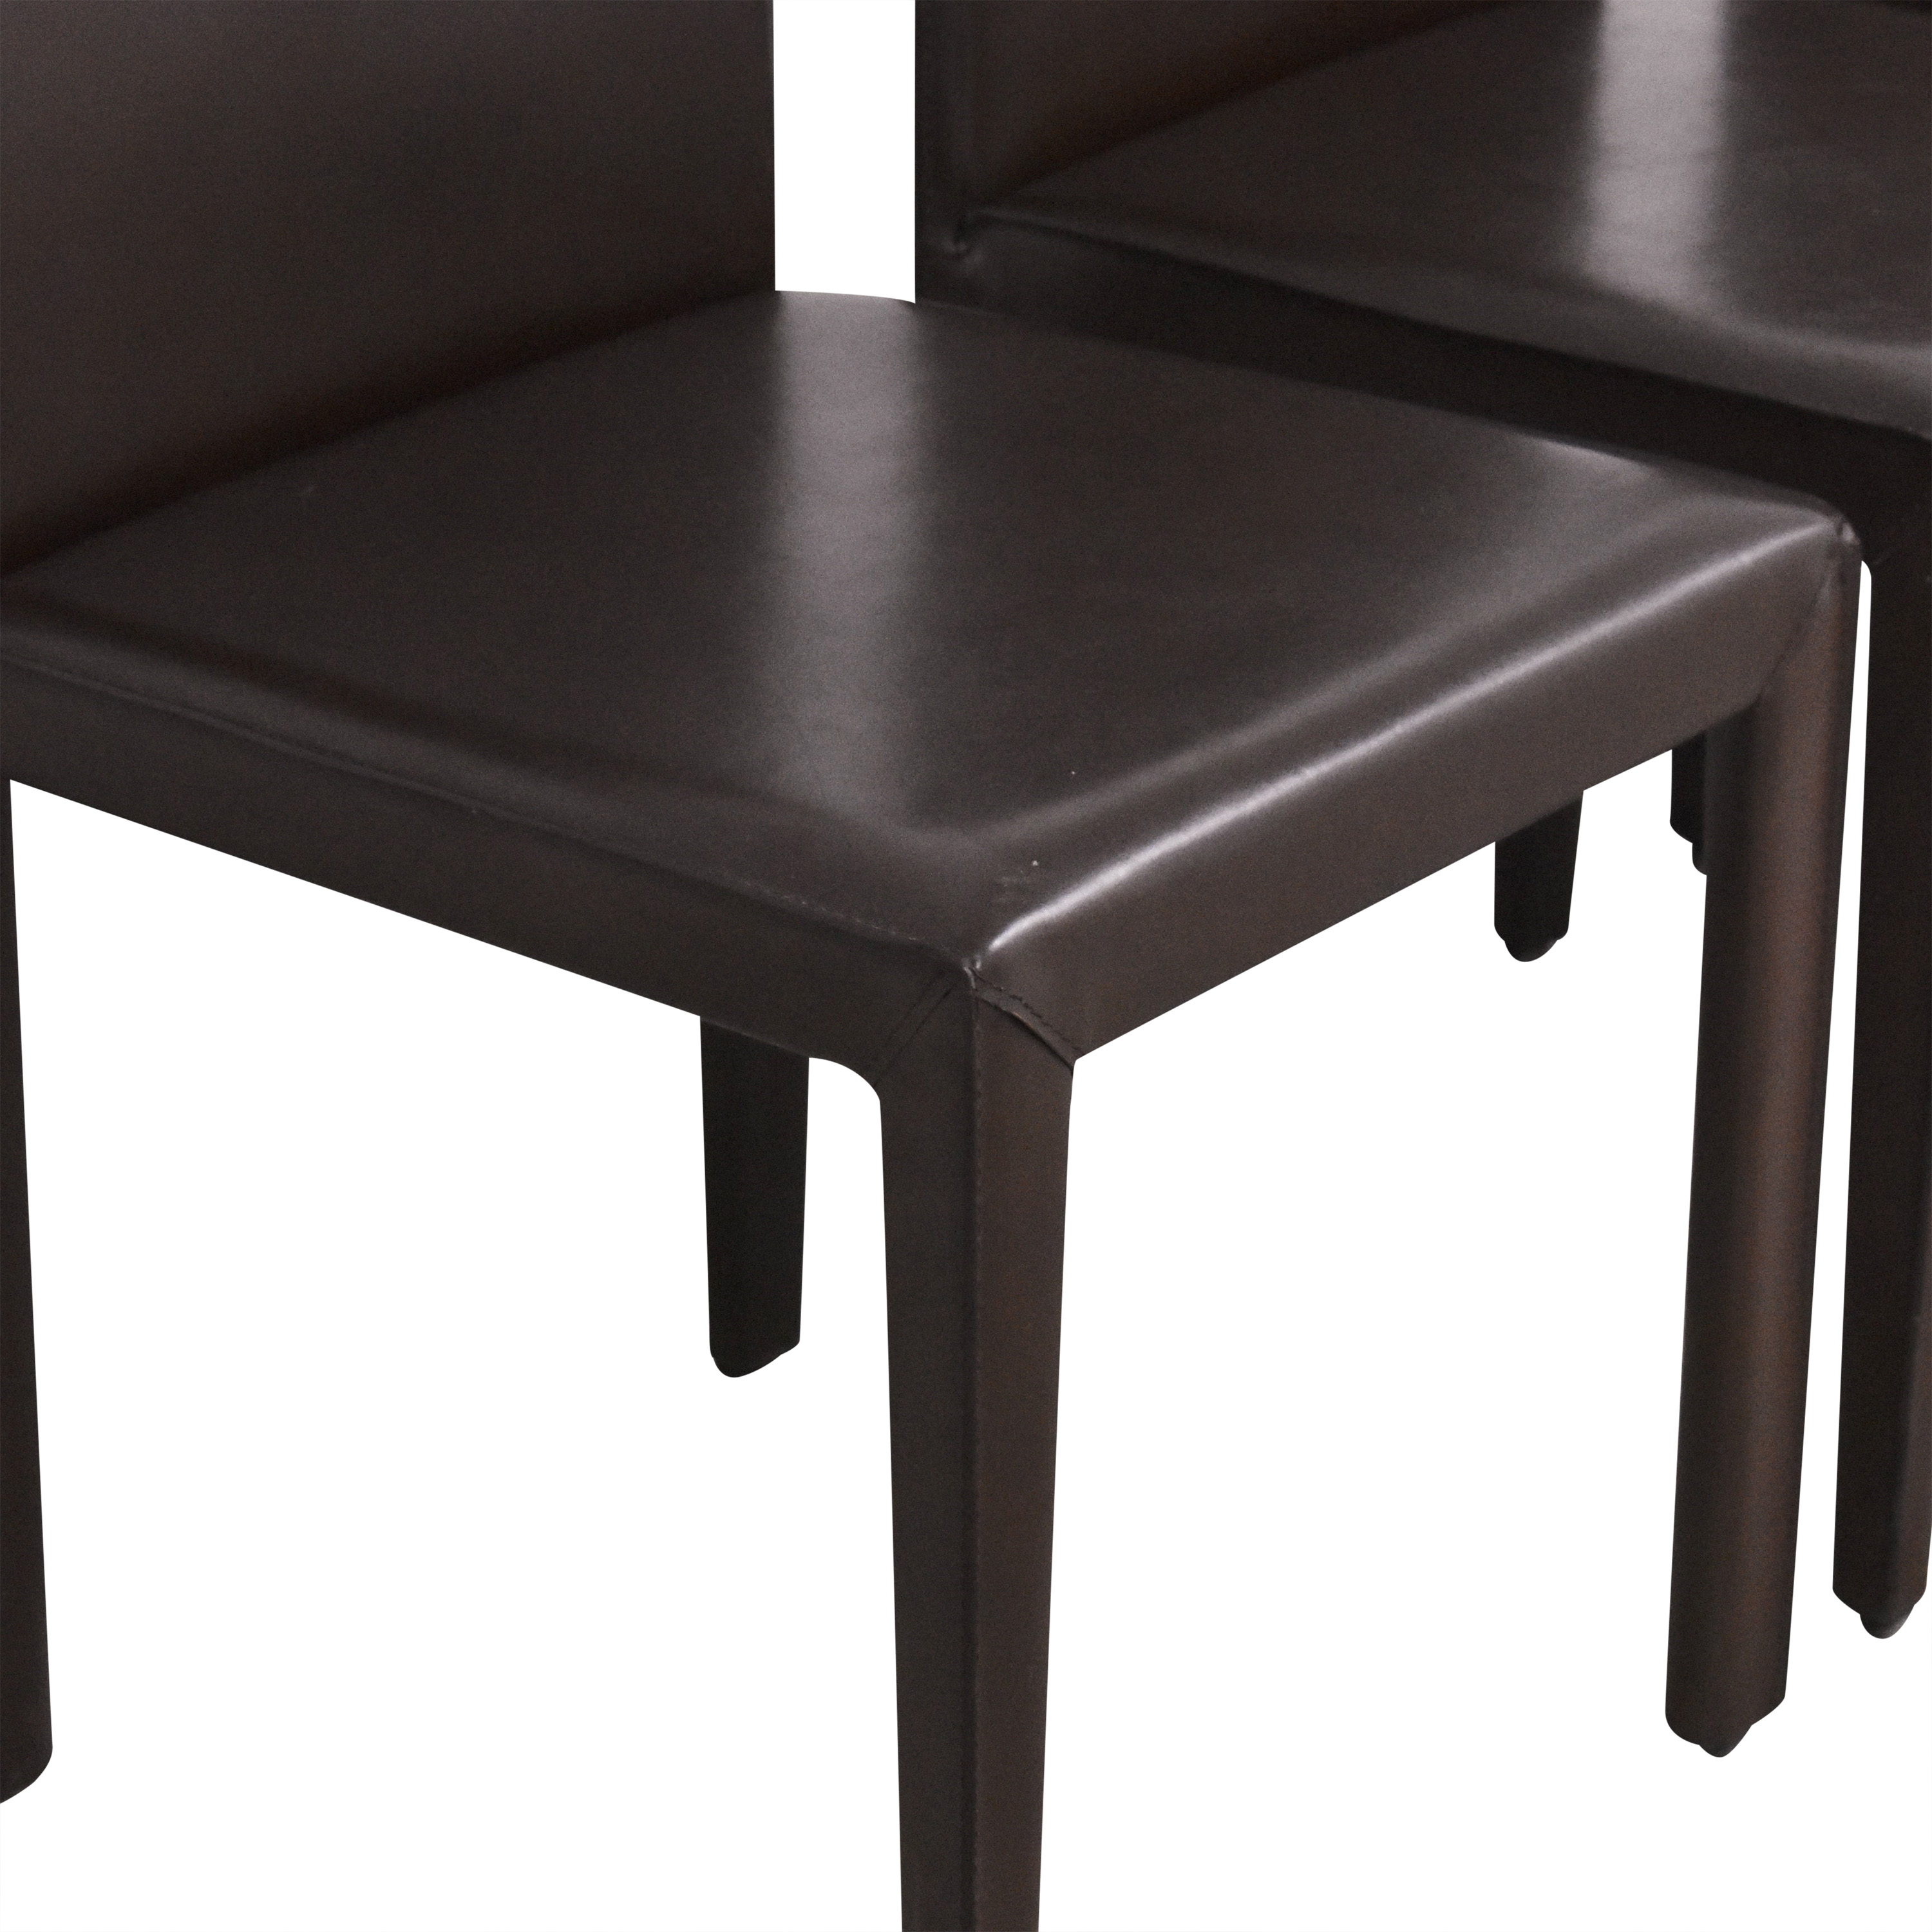 Crate & Barrel Crate & Barrel Folio Dining Chairs by Maria Yee ma